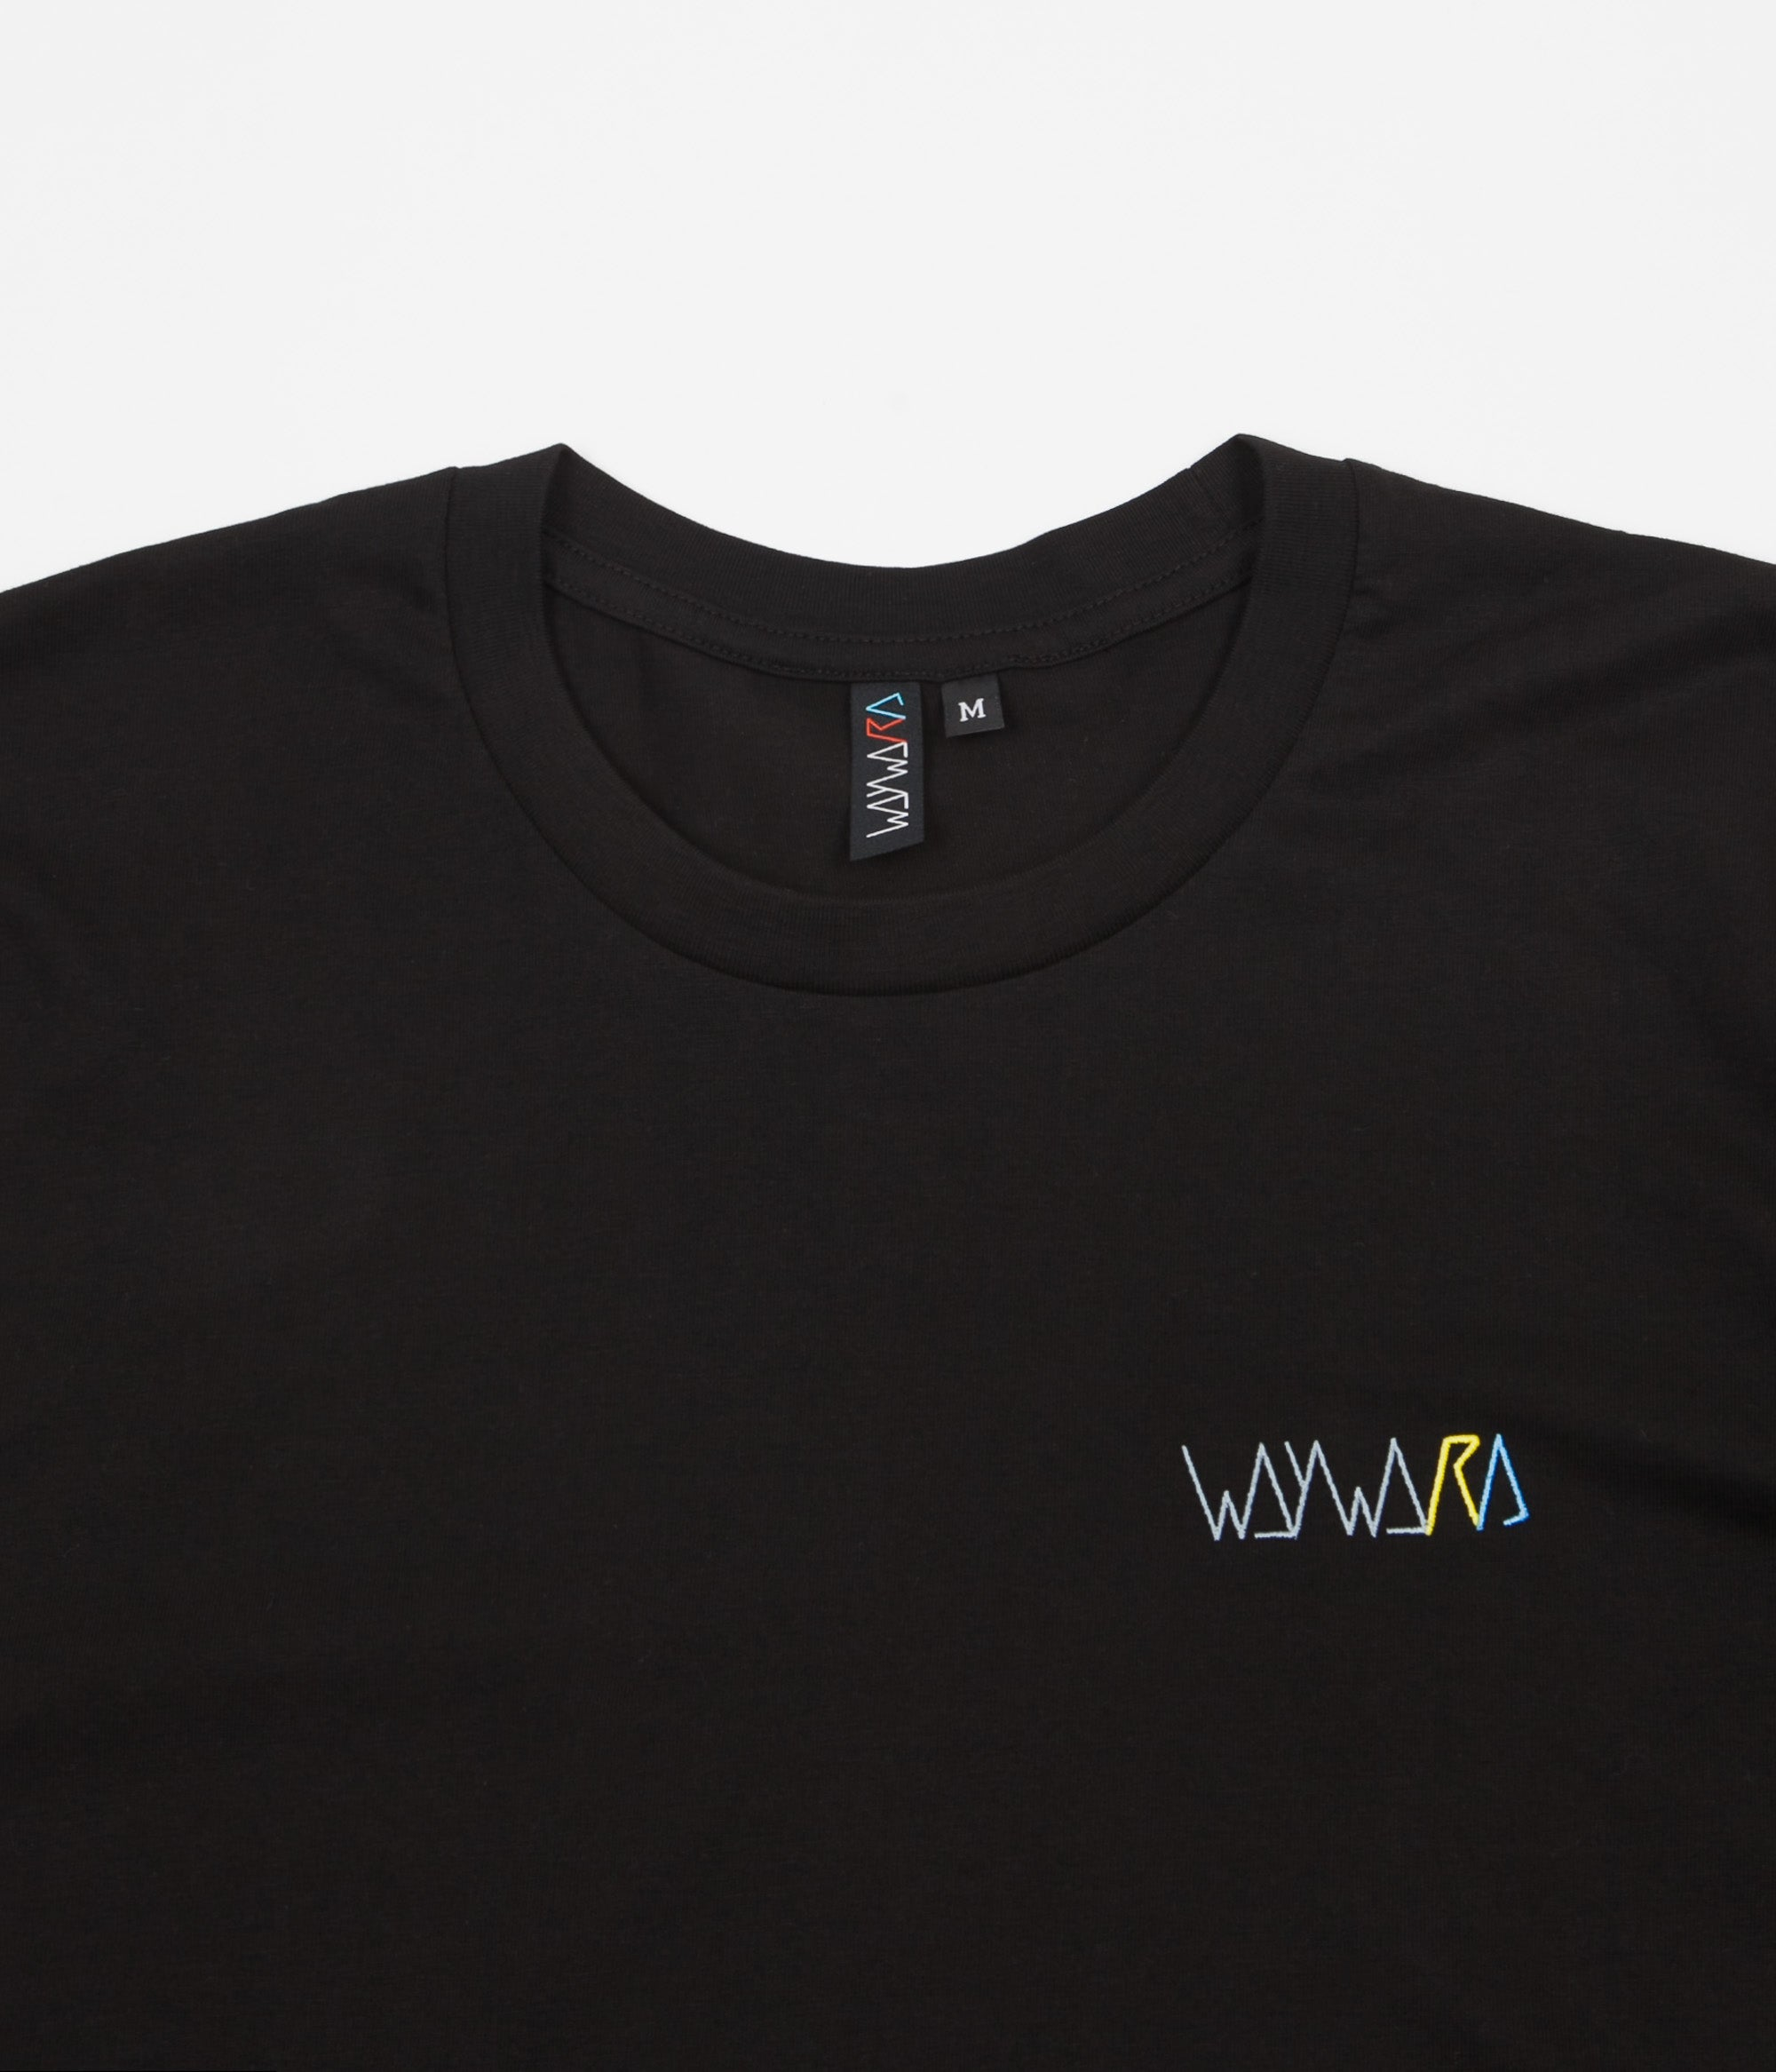 Wayward Strider T-Shirt - Black / Yellow / Blue